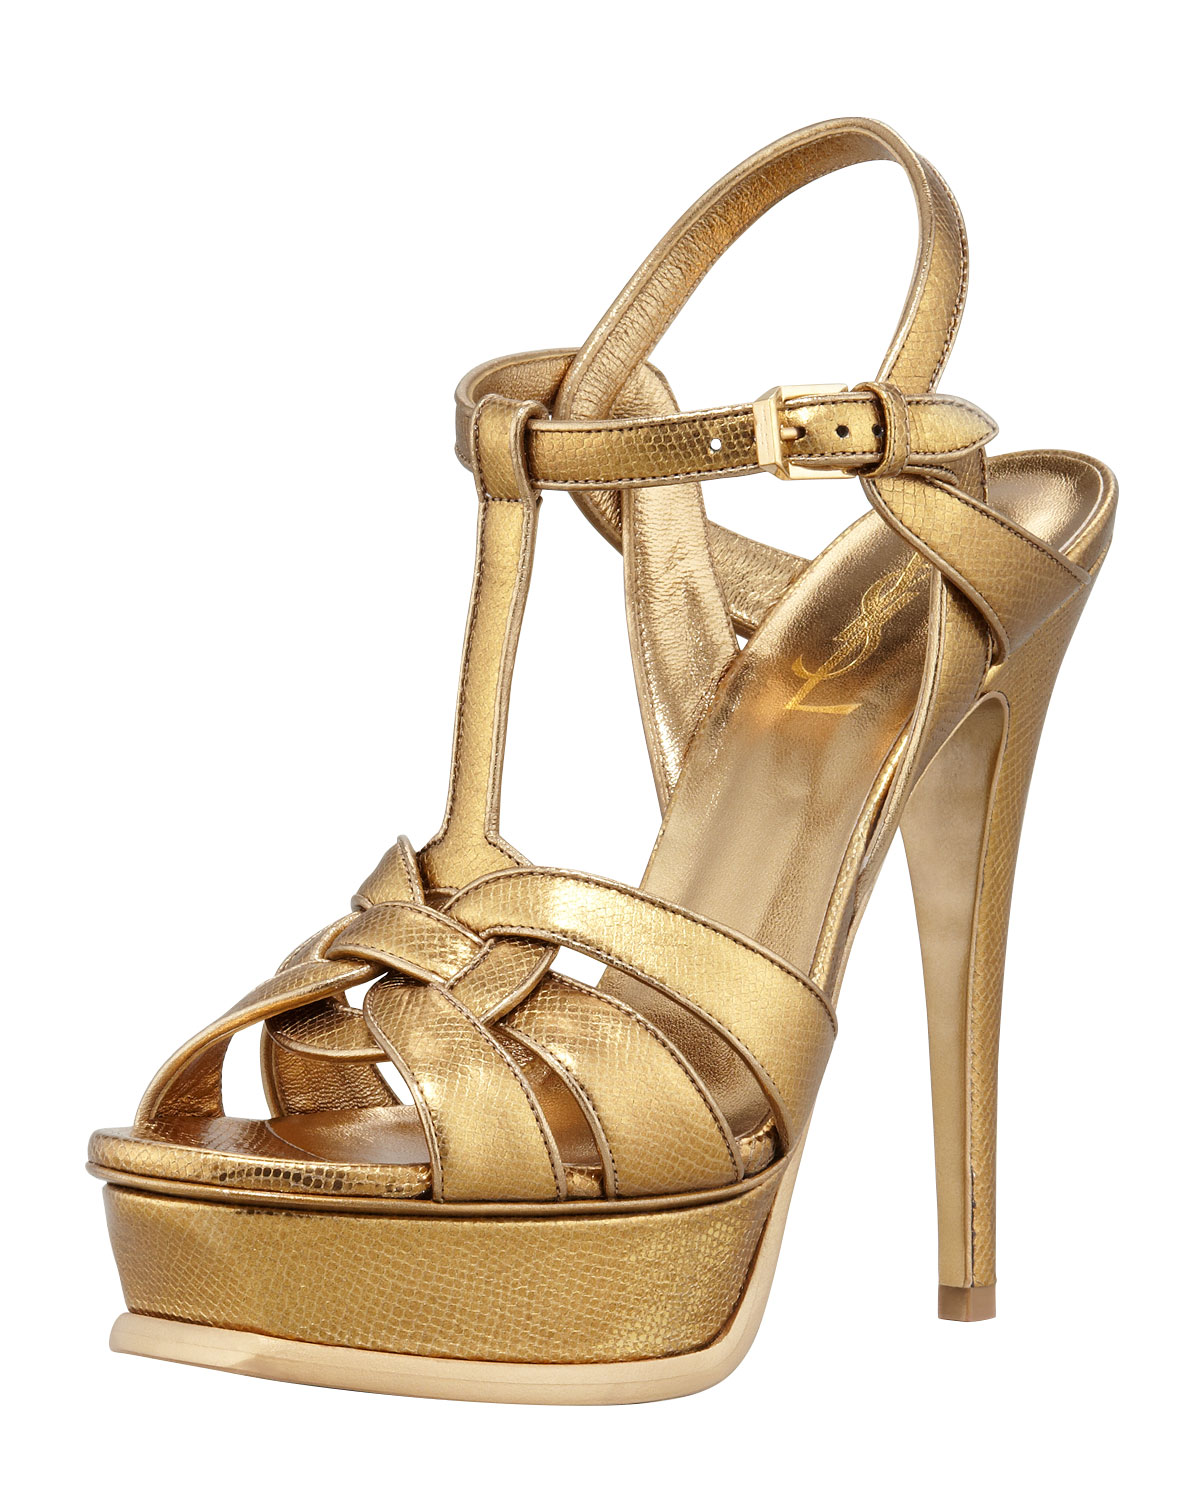 a002af04db1 Lyst - Saint Laurent Tribute Snakeembossed Platform Sandal in Metallic